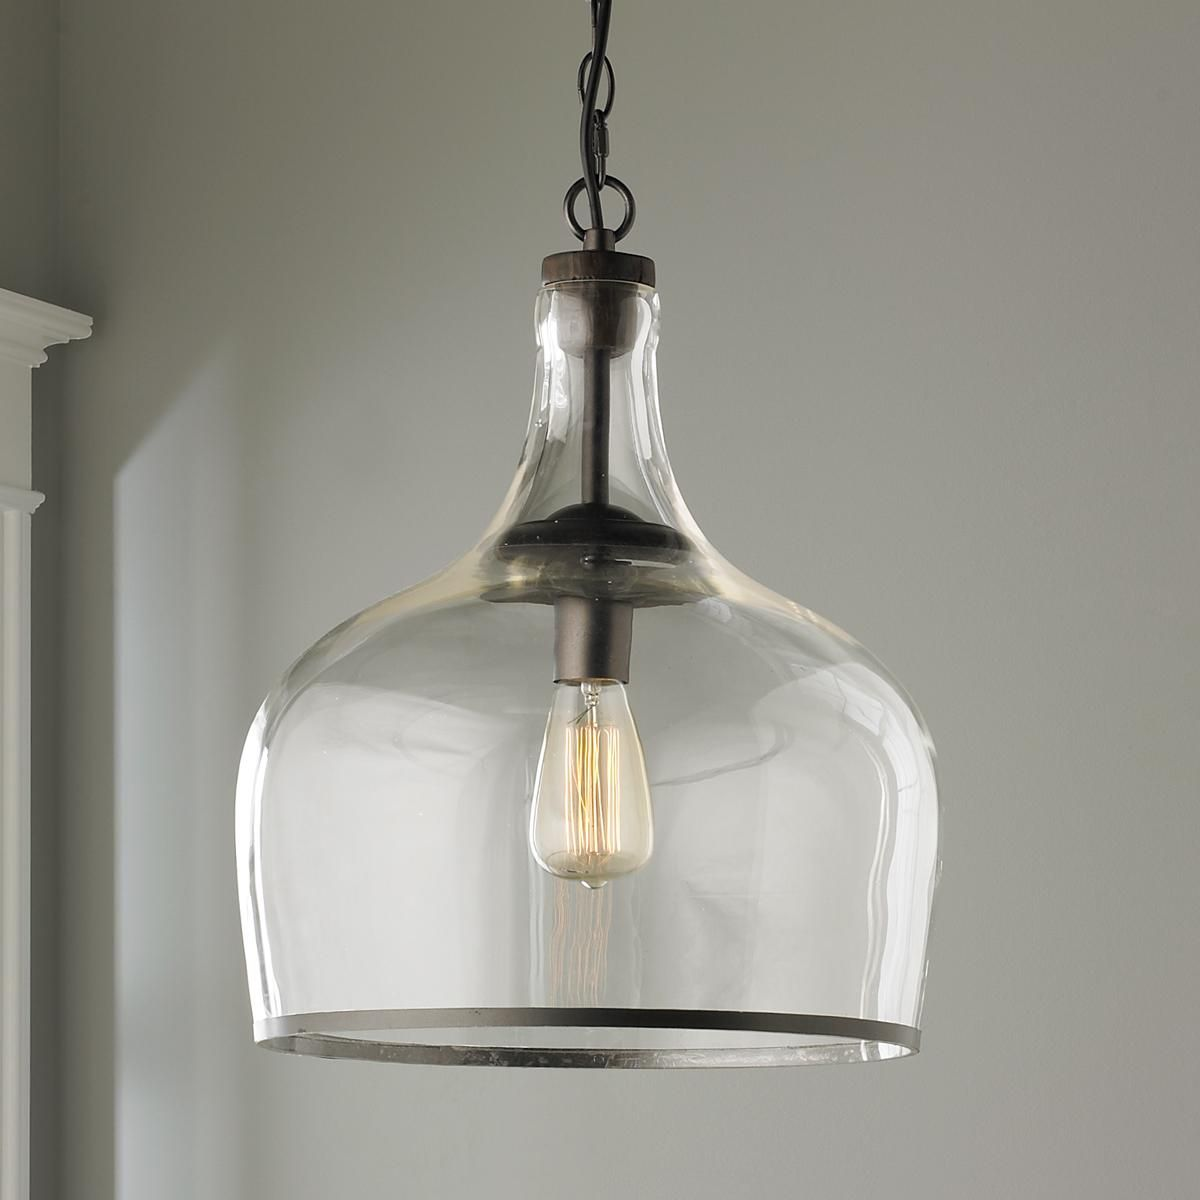 Reproduction Glass Cloche Pendant Glass Pendant Light Cottage Lighting Farmhouse Kitchen Lighting